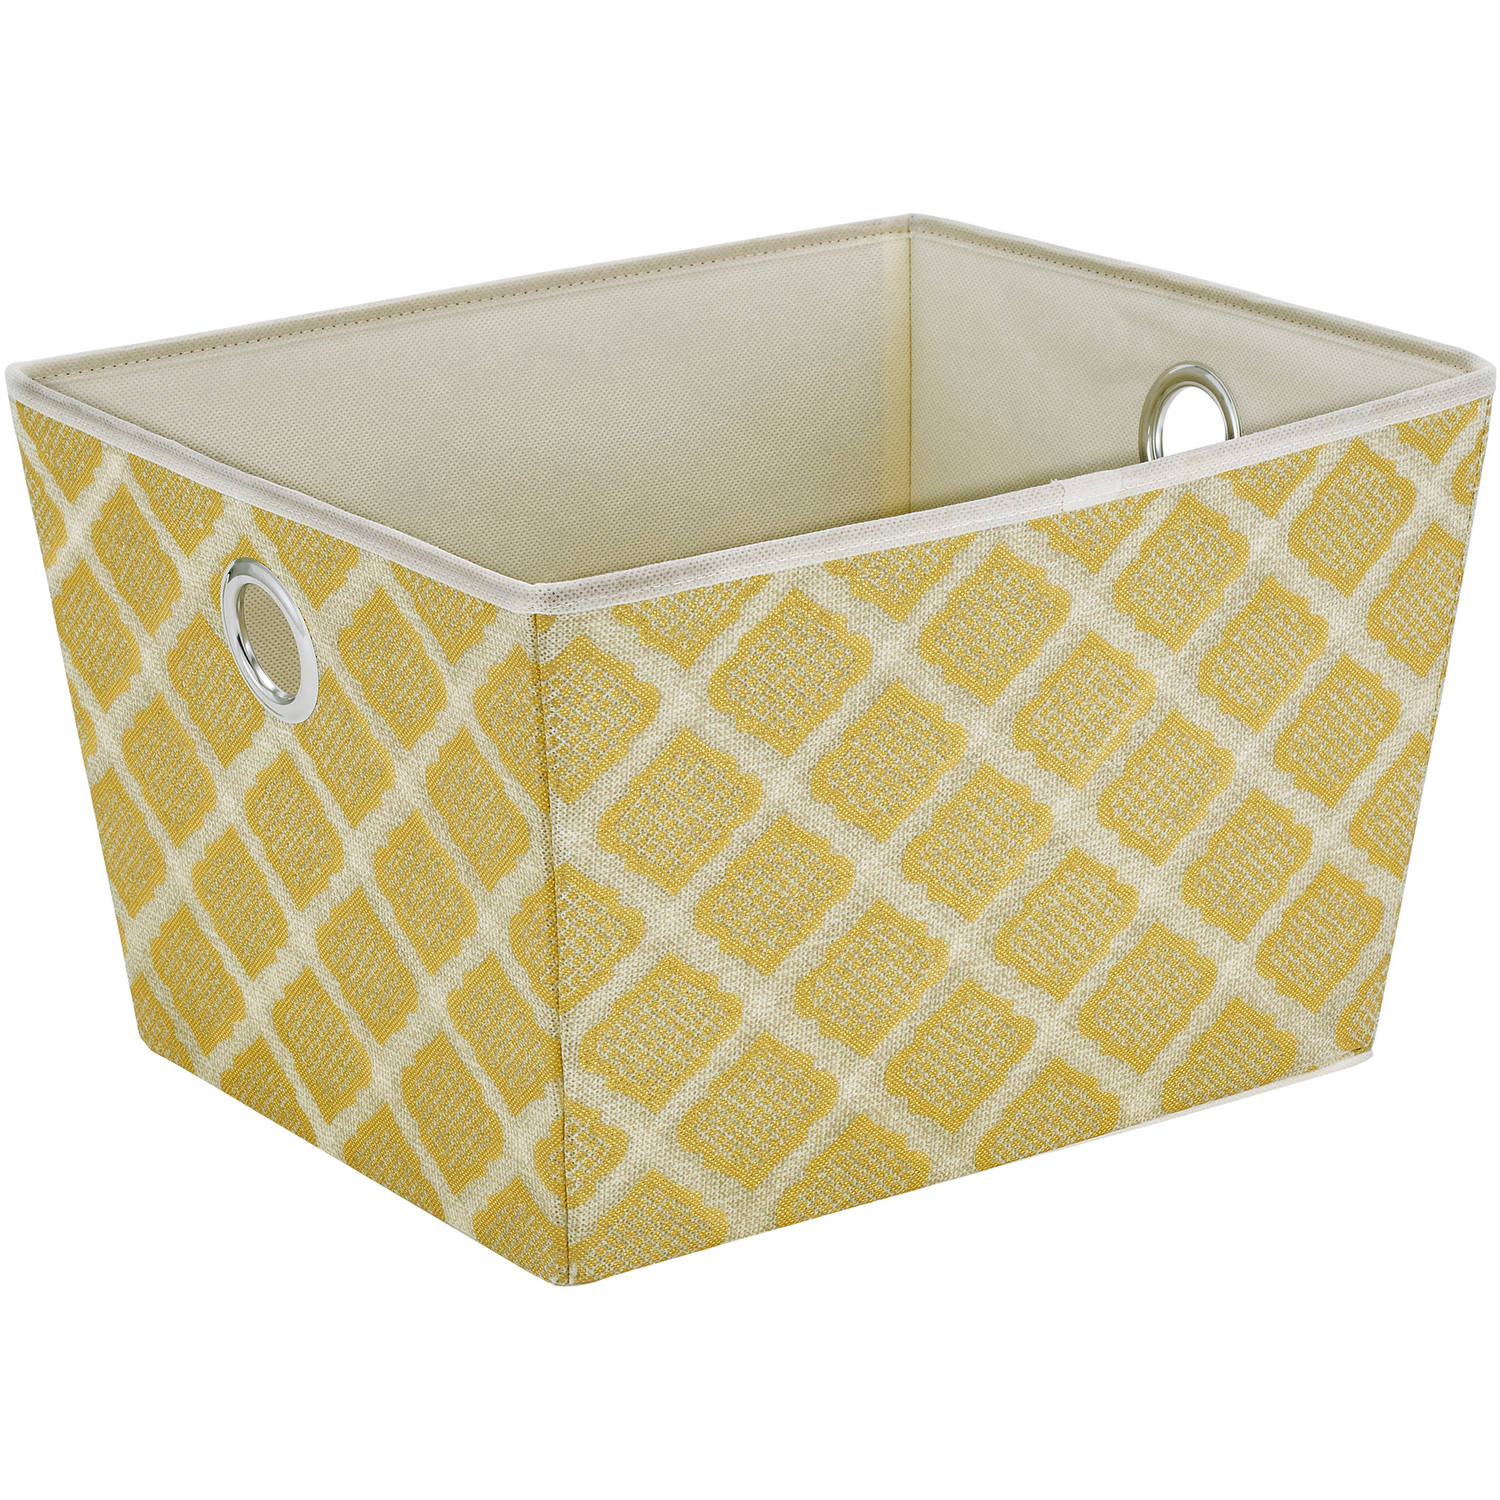 ClosetCandie Medium Grommet Storage Bin, Jasmine Gold